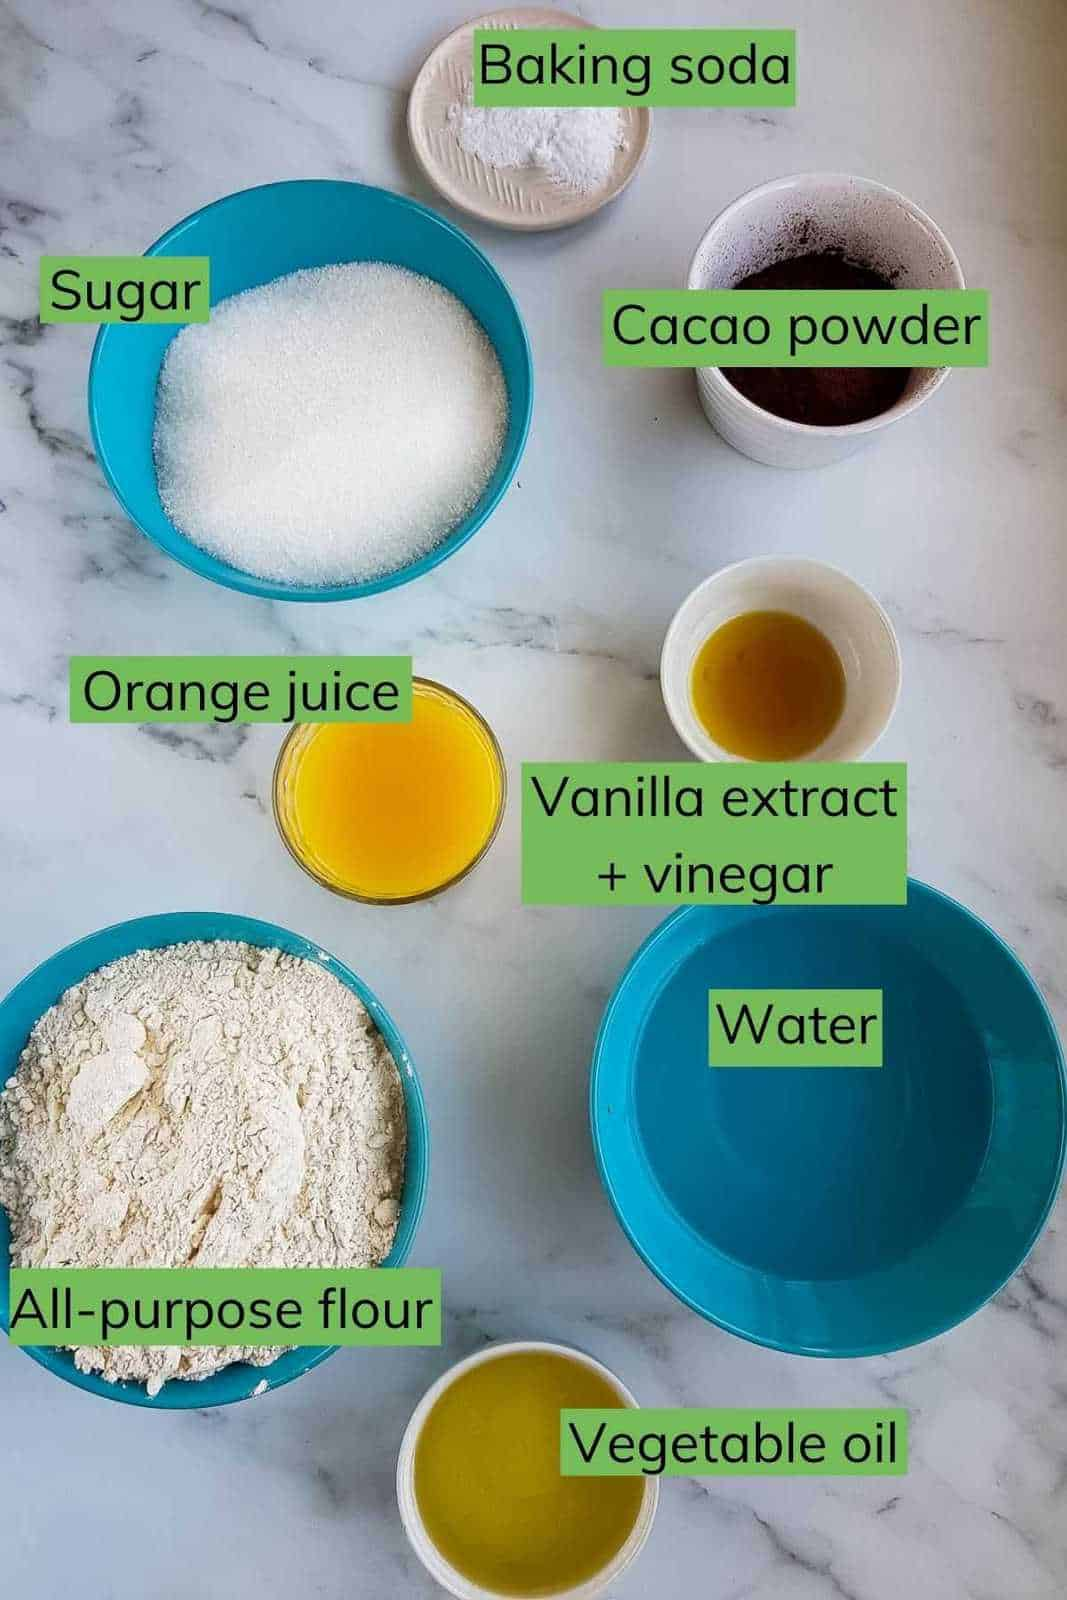 The ingredients to make chocolate cake laid out on a table.